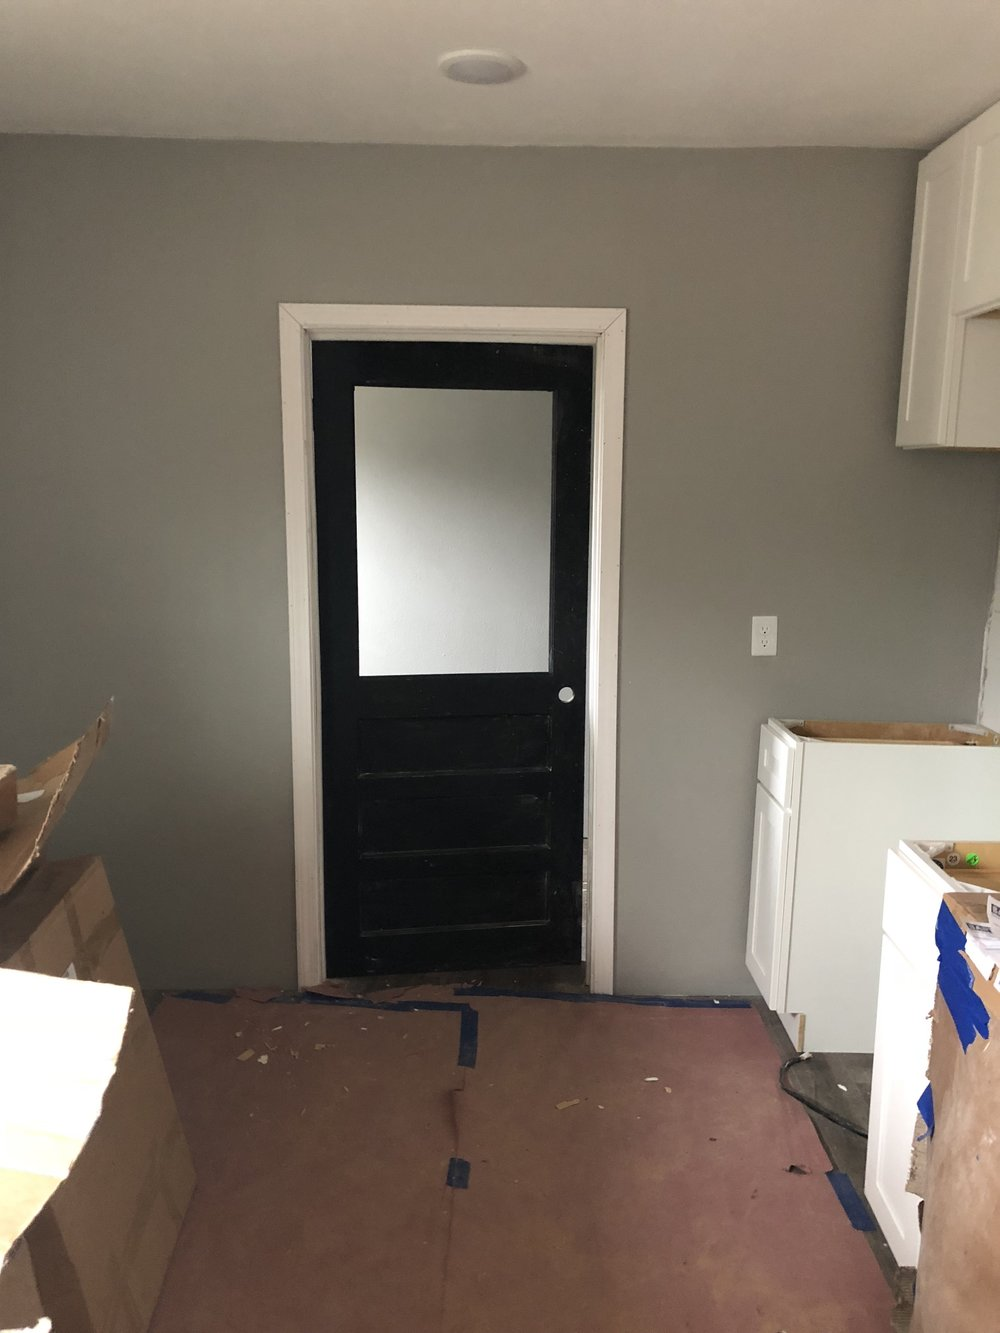 This door is a work in progress. This door was one of the originals on the house and I am re-purposing it as our pantry door. I have to give it a little more TLC. It got a little damaged during the remodel.